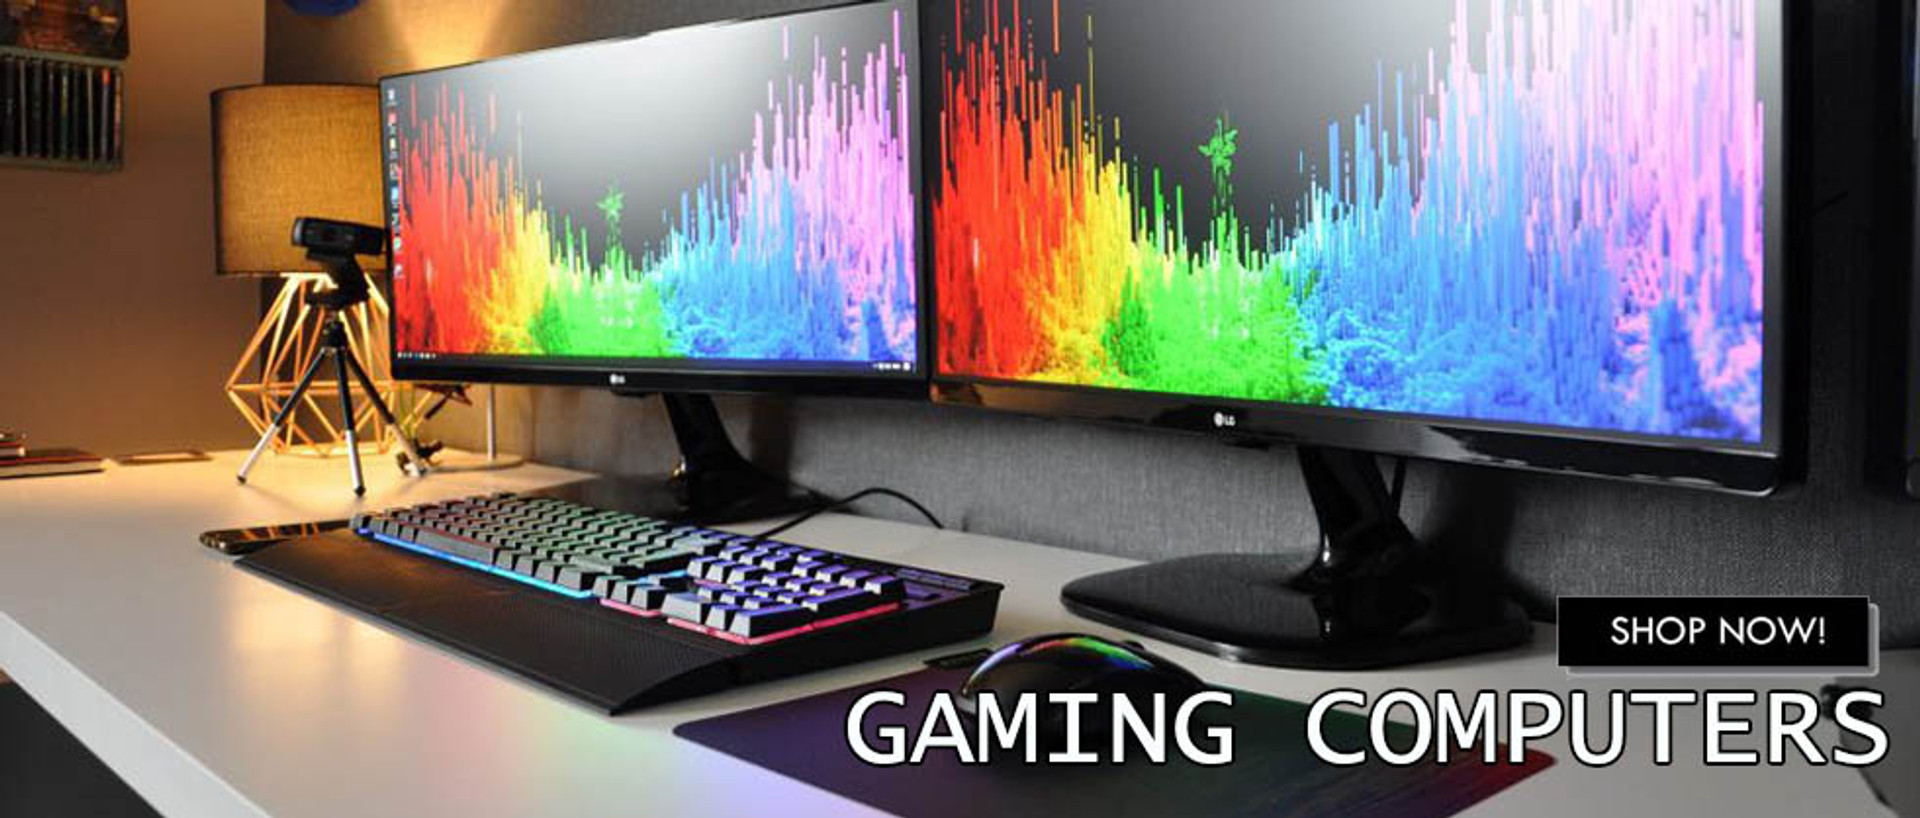 Gaming Computers For Sale Now!